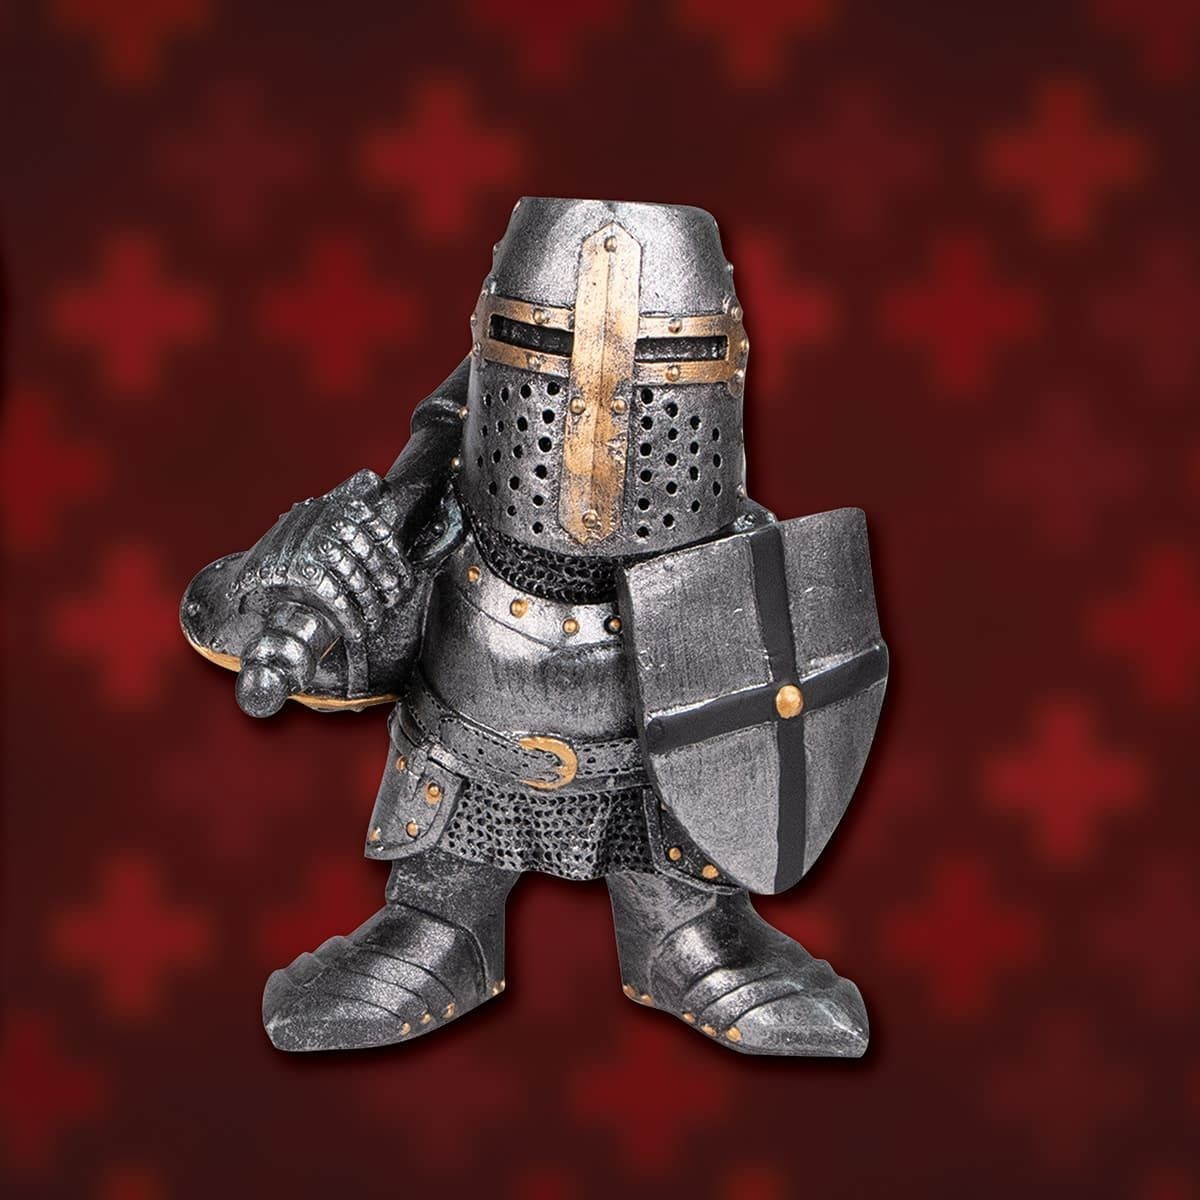 Picture of Shorty Crusader Armored Knight Statue